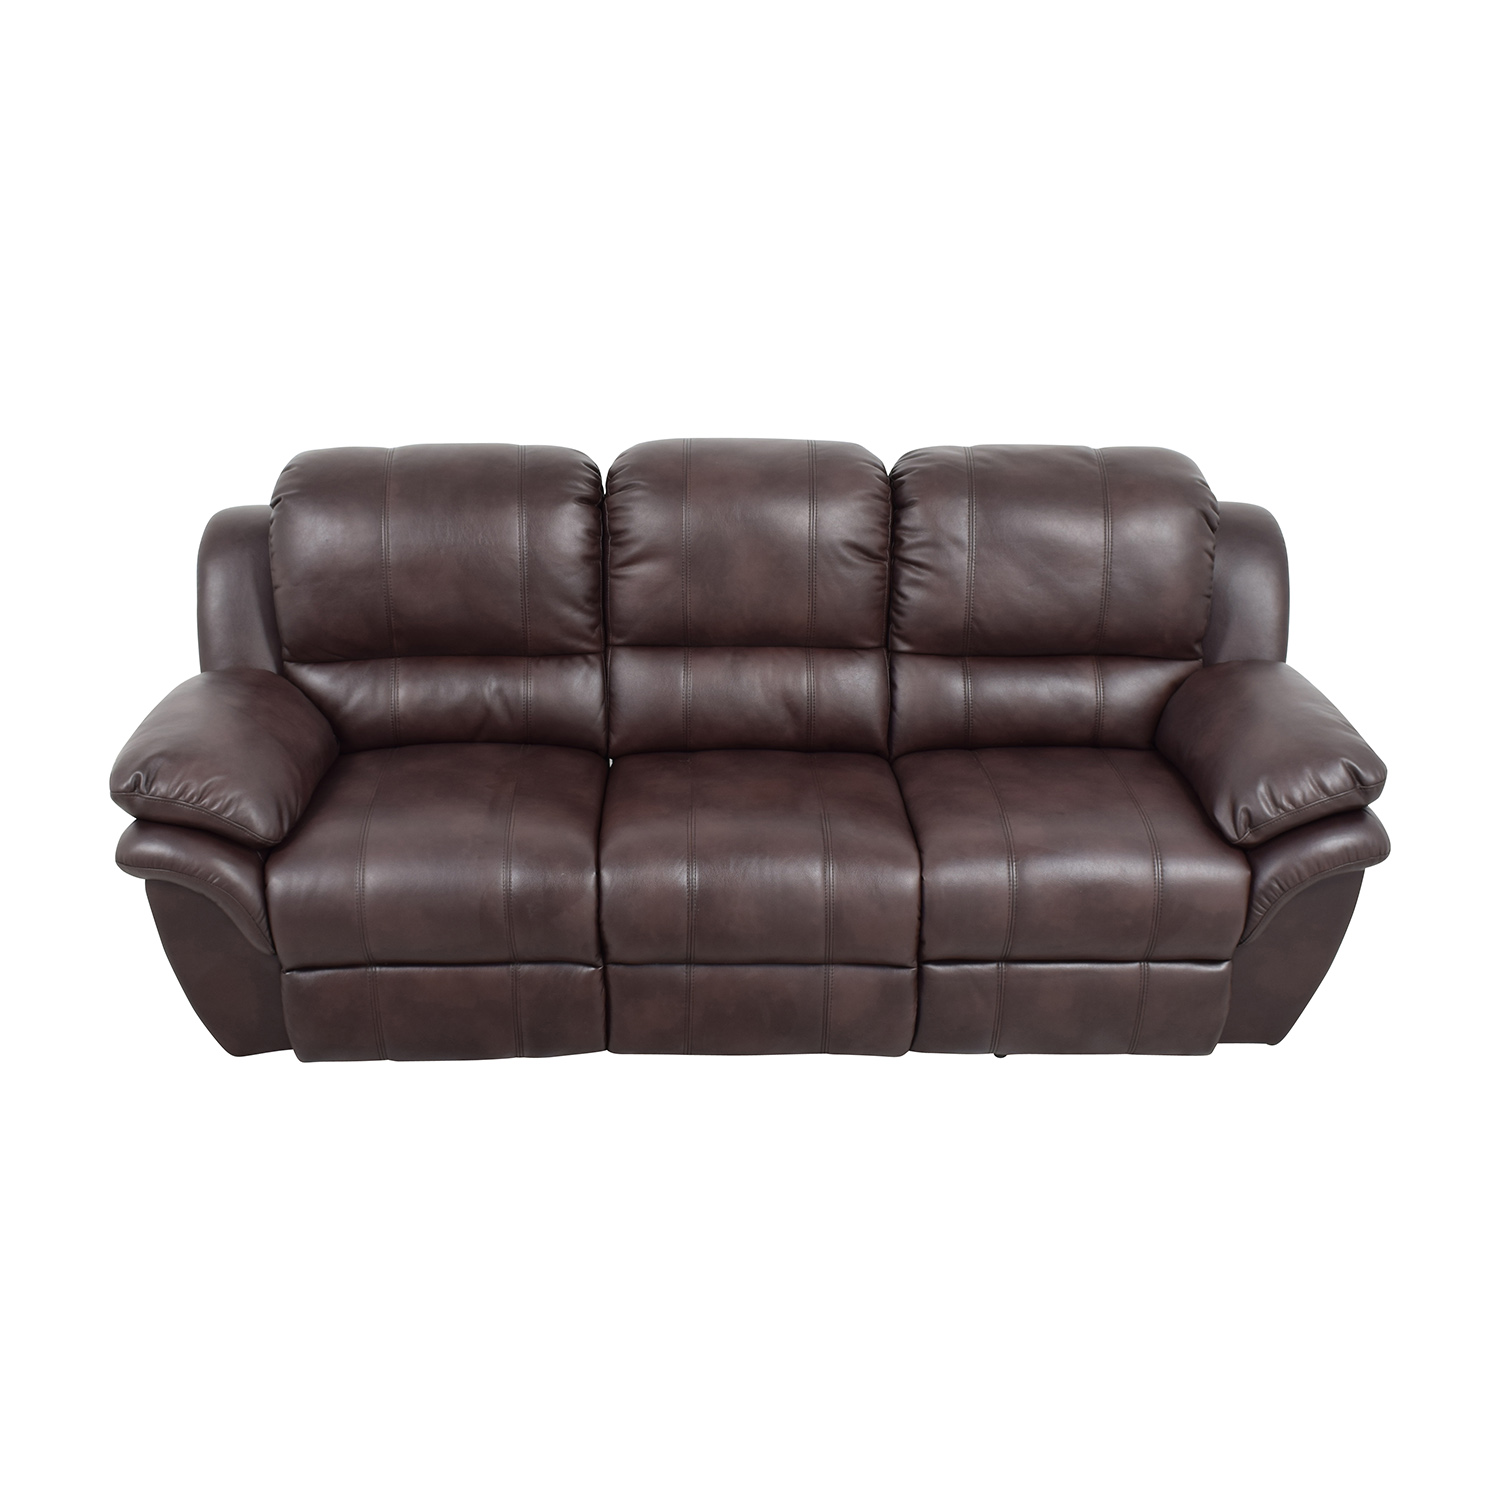 New Classic Home Furnishing Leather Reclining Brown Couch / Classic Sofas